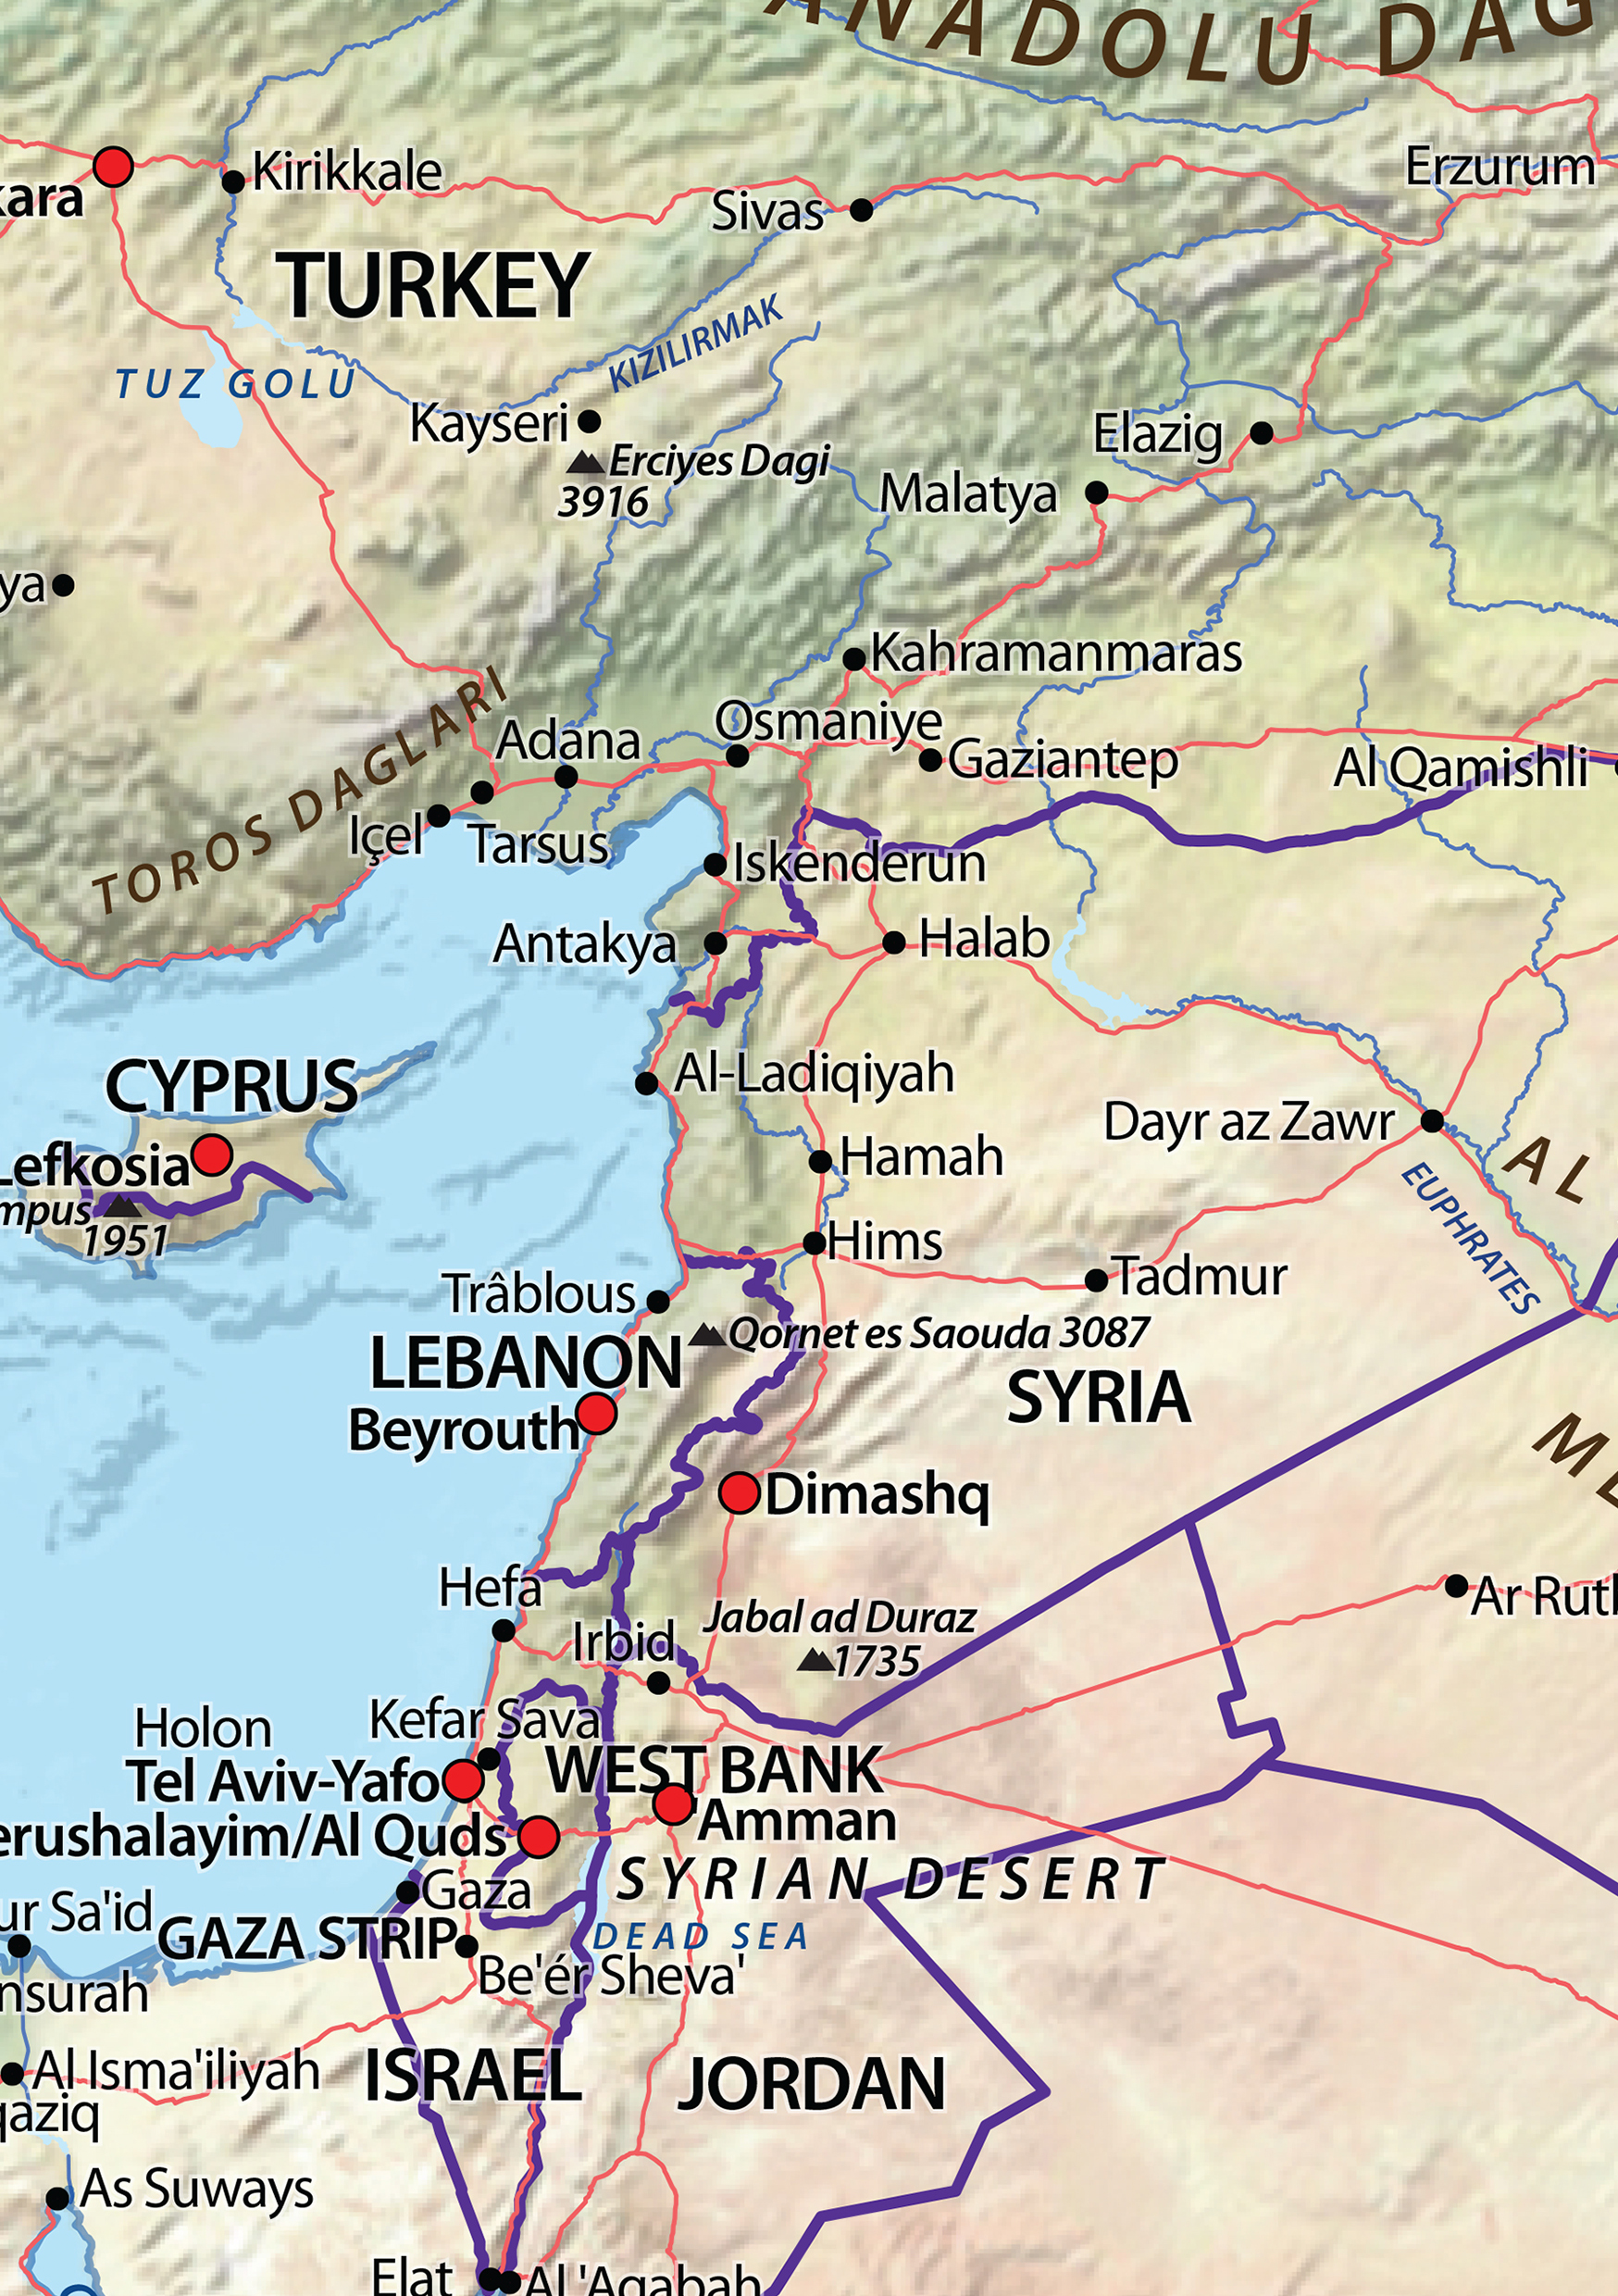 Digital Physical Map Middle East 634 | The World of Maps com